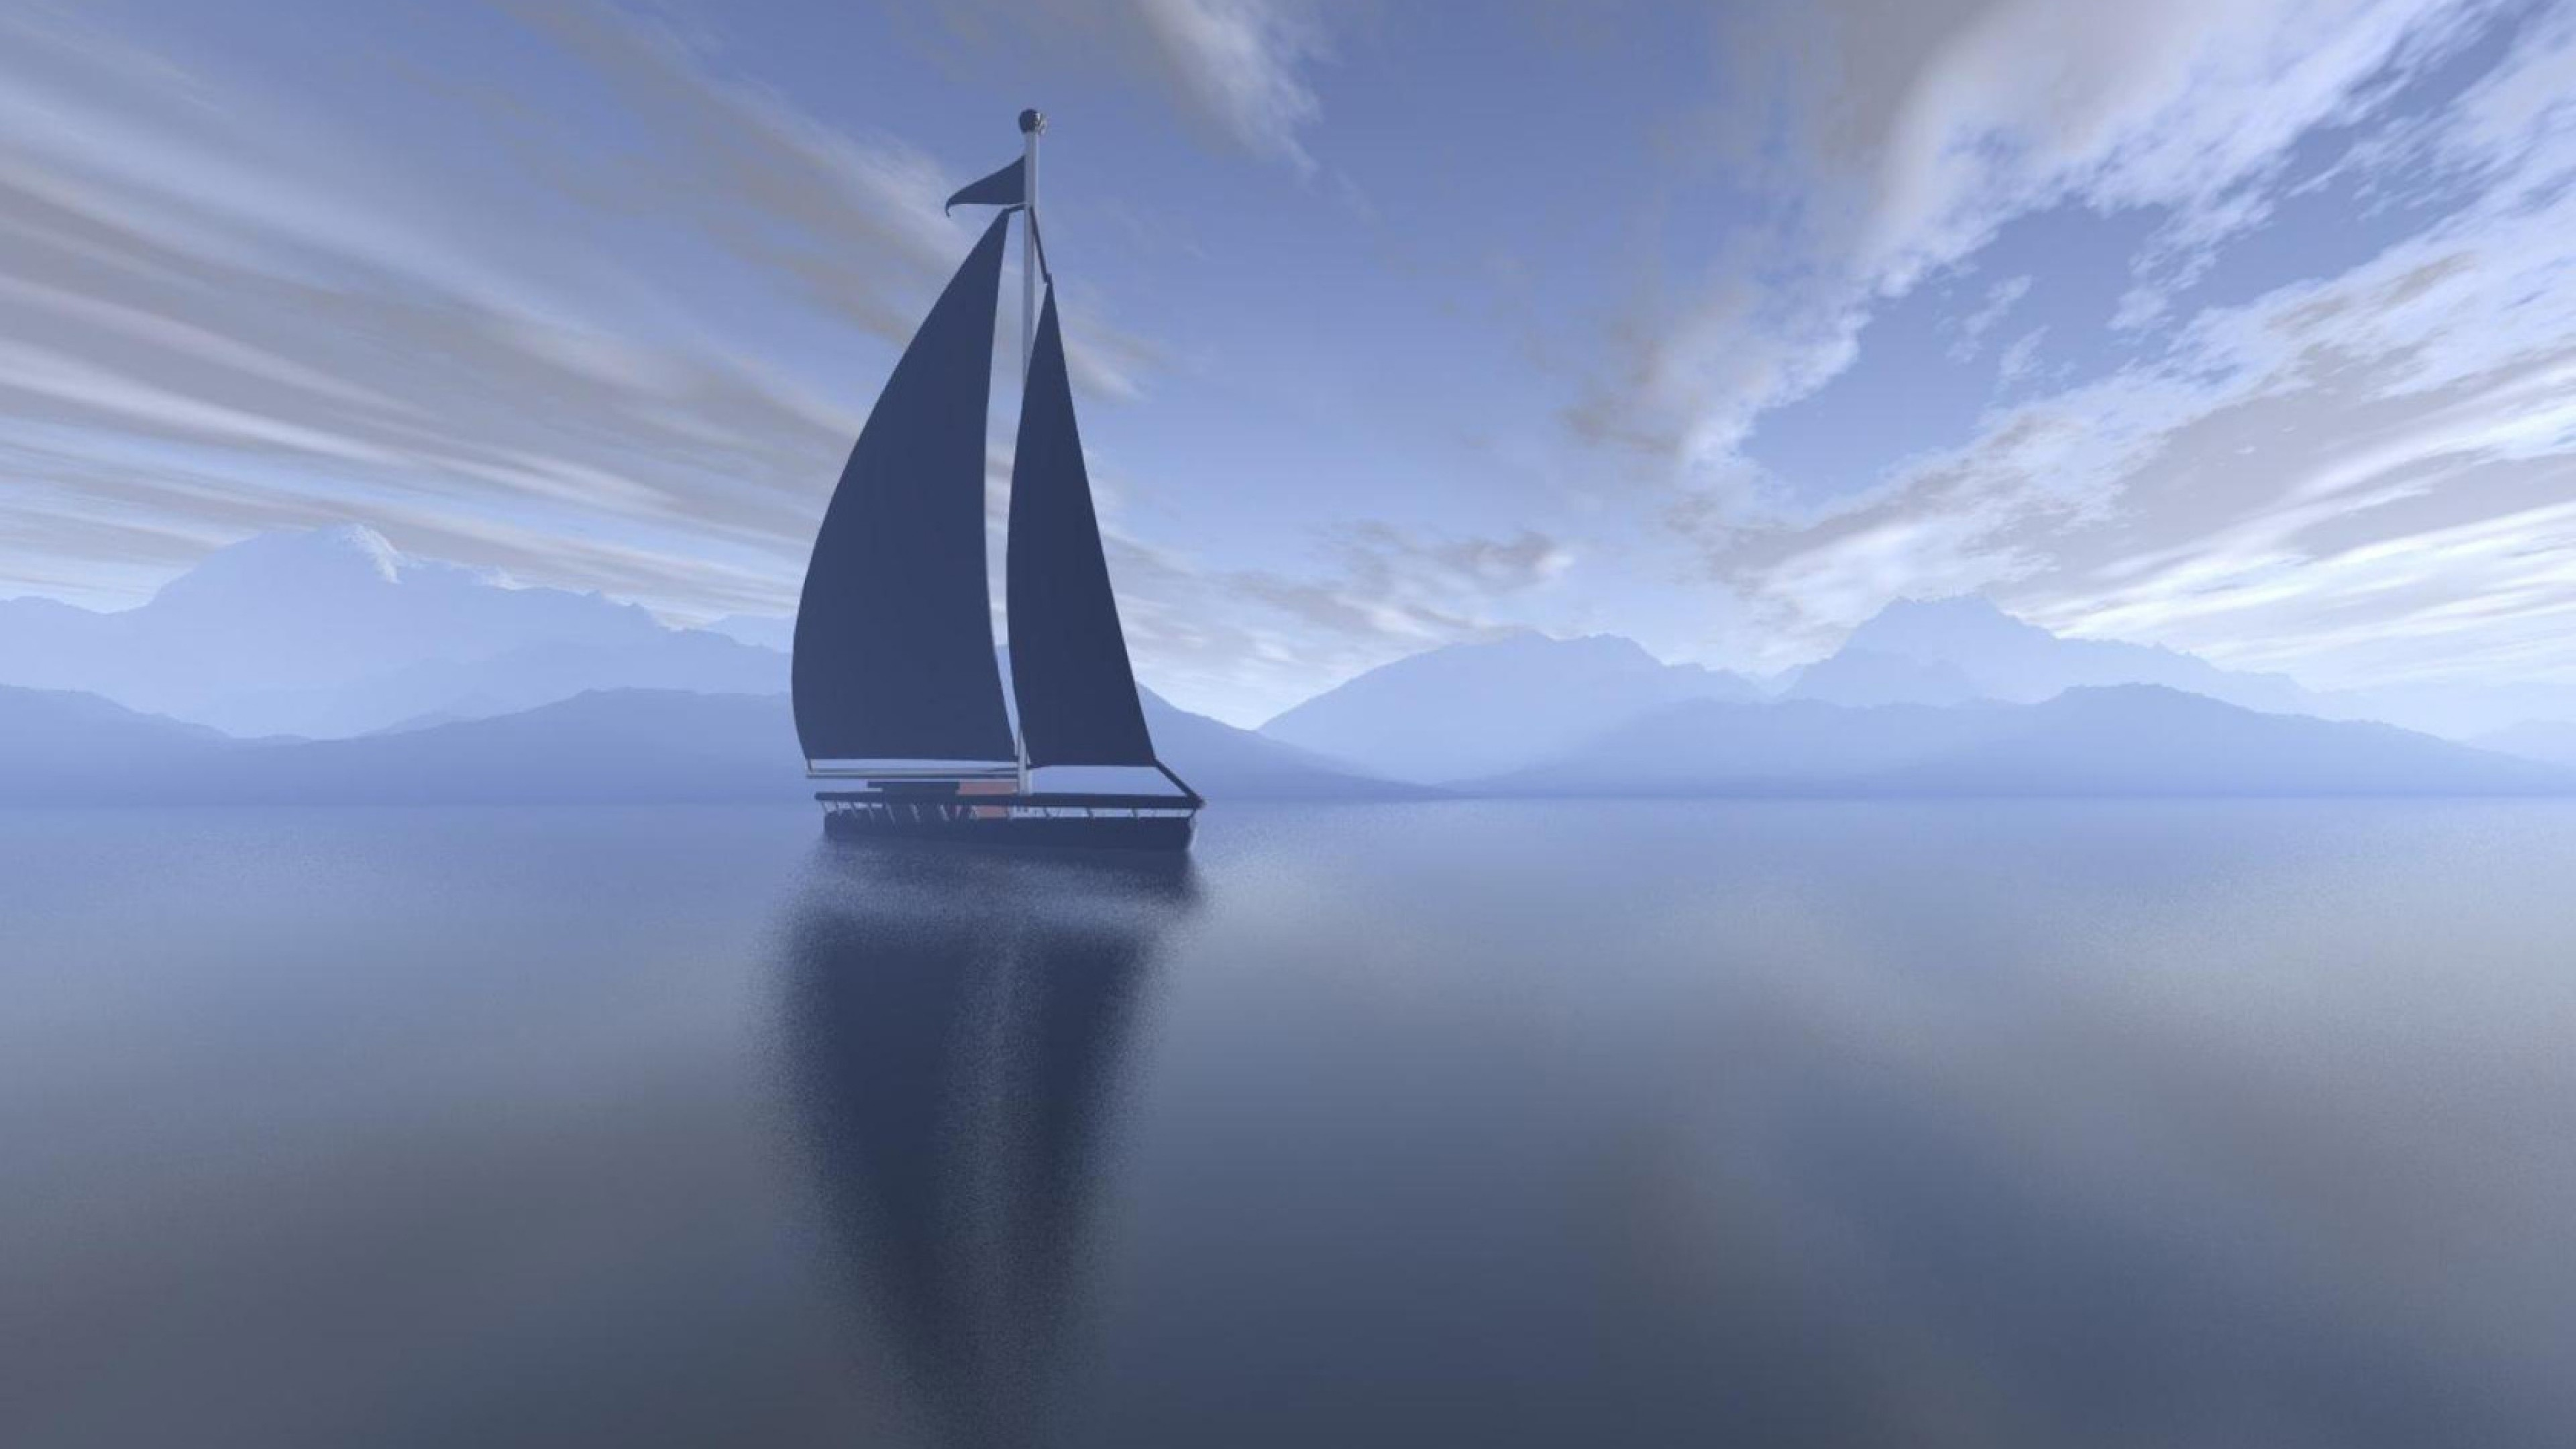 3840x2160 sailing wallpaper for computer Sailing Wallpaper For Computer -  ModaFinilsale